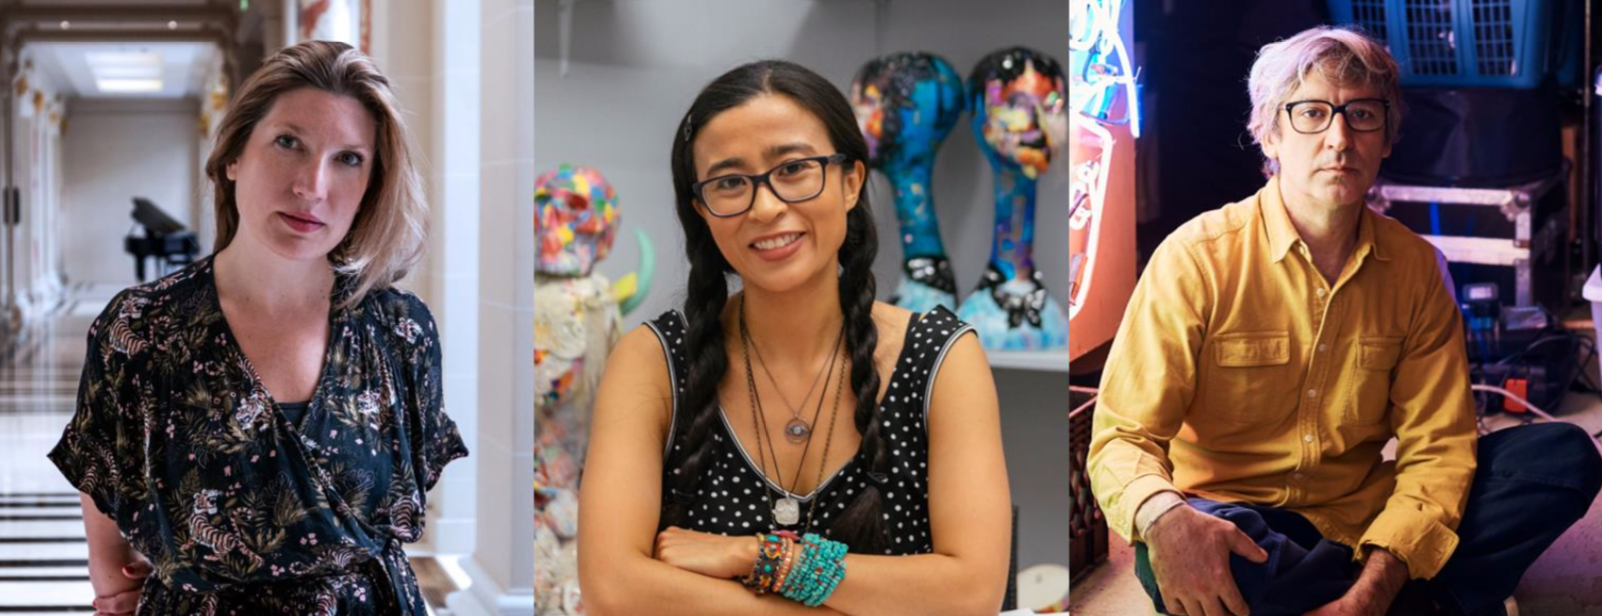 Picture caption: Commissioned art works from Elise Morin, Saya Woolfalk and Iván Navarro will feature at The Peninsula Paris for 'Art in Resonance'